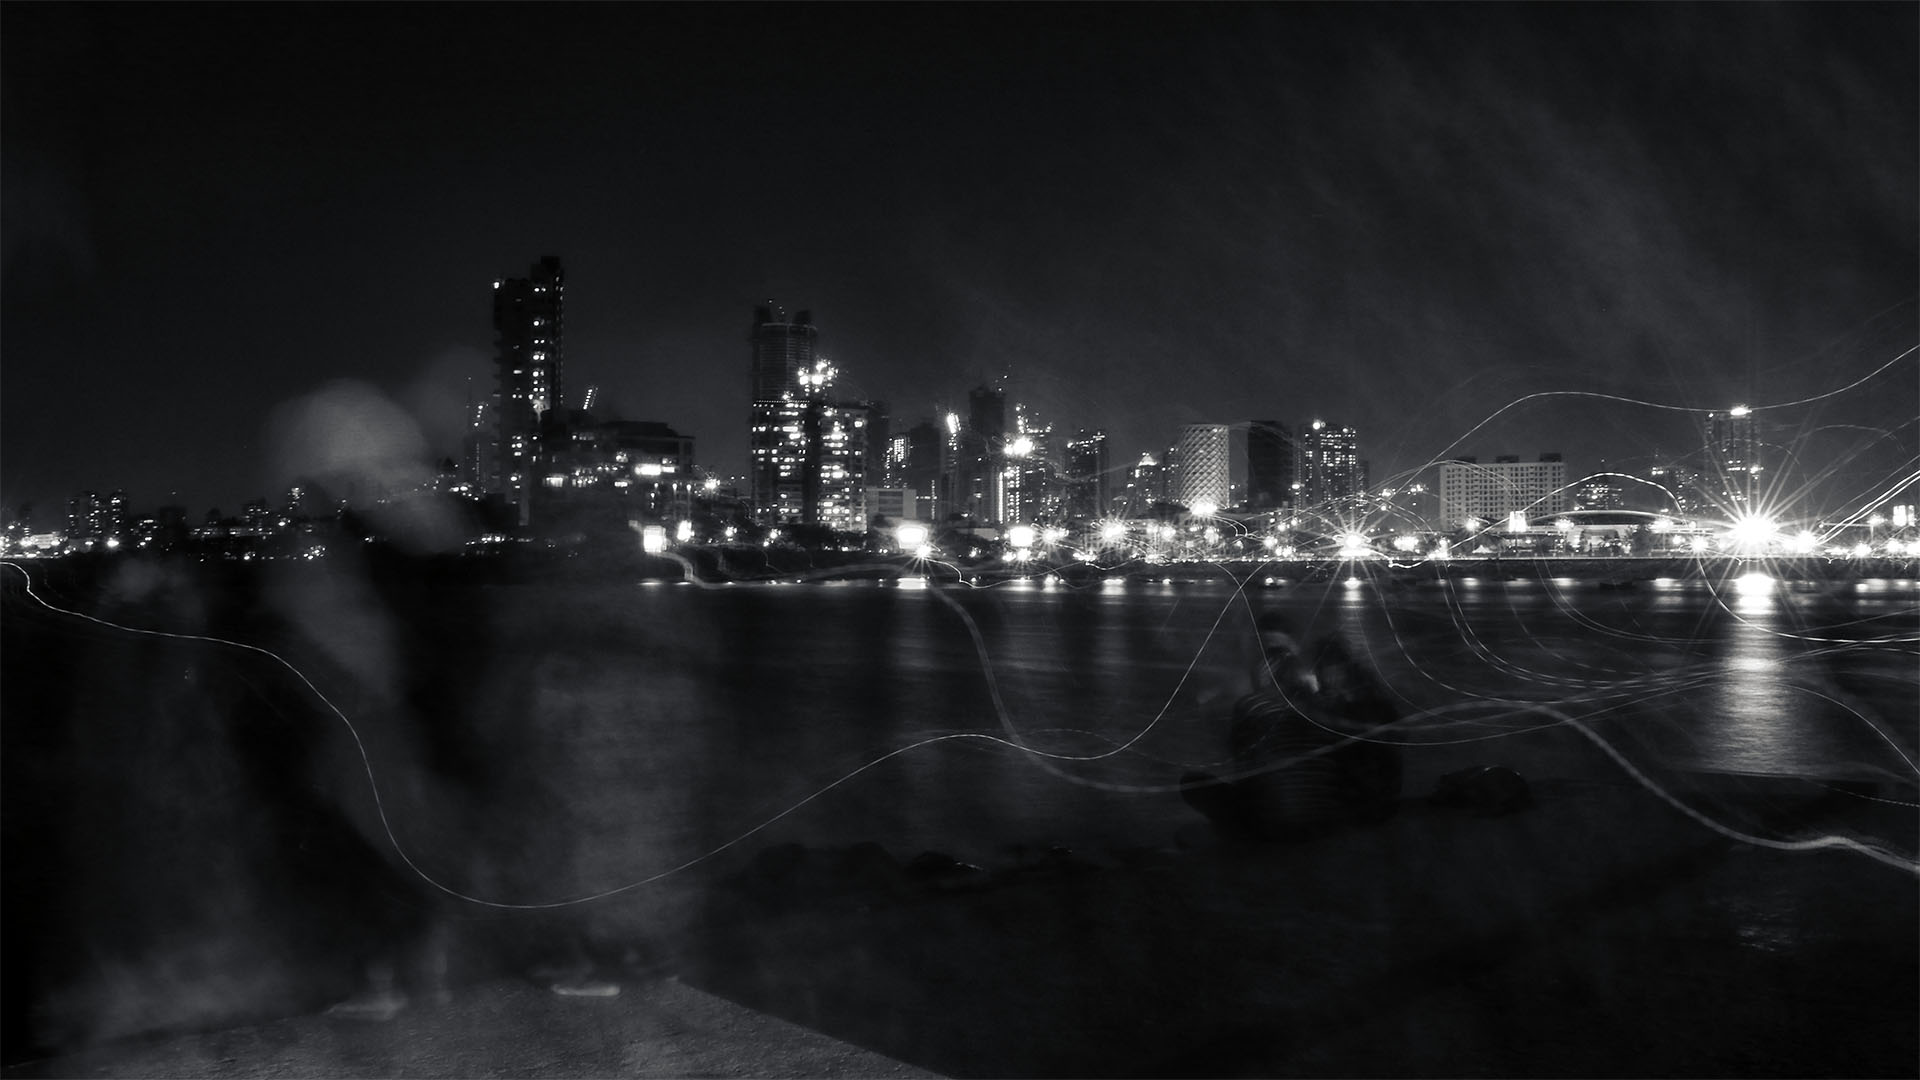 Mumbai was bustling with activity and shone its bright lights as if to call people towards it. Some tourists took pictures of the bright city lights. But the call of the city was strong. So they hurriedly went away leaving a trail of their mobile phone's lights and a shadow of their presence on the banks of the sea on the other side.